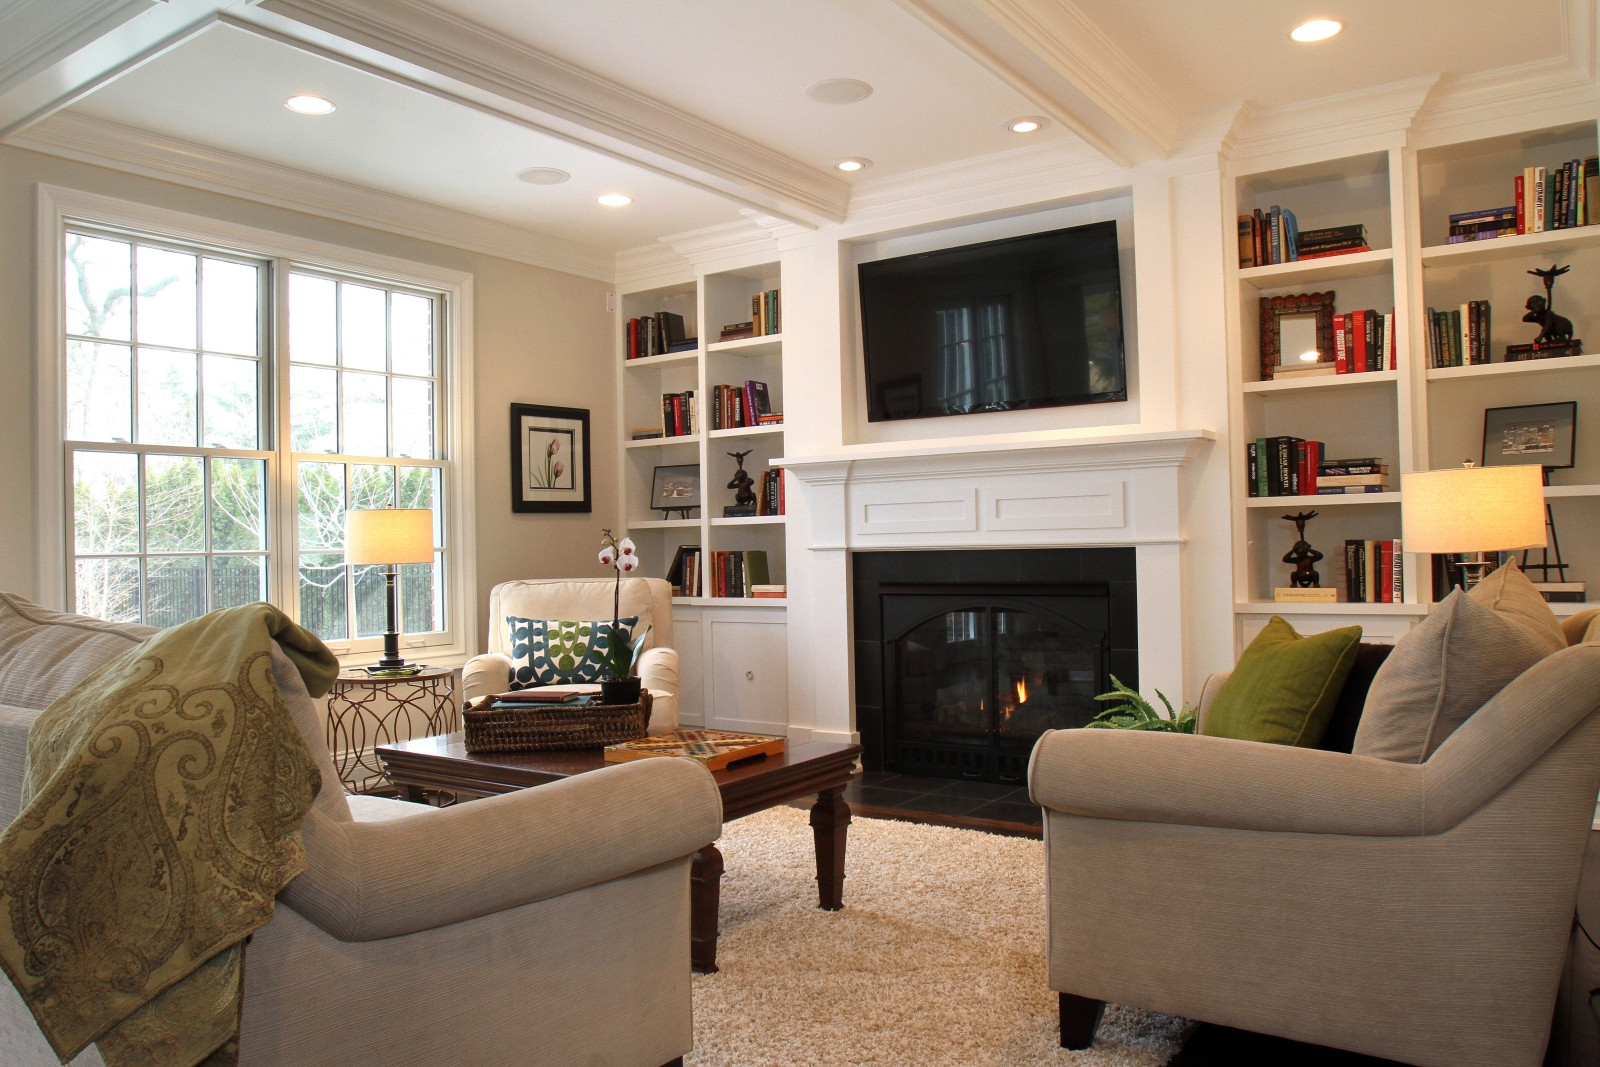 Best ideas about Small Family Room Ideas . Save or Pin Tv Room Decorating Ideas Home Design Now.